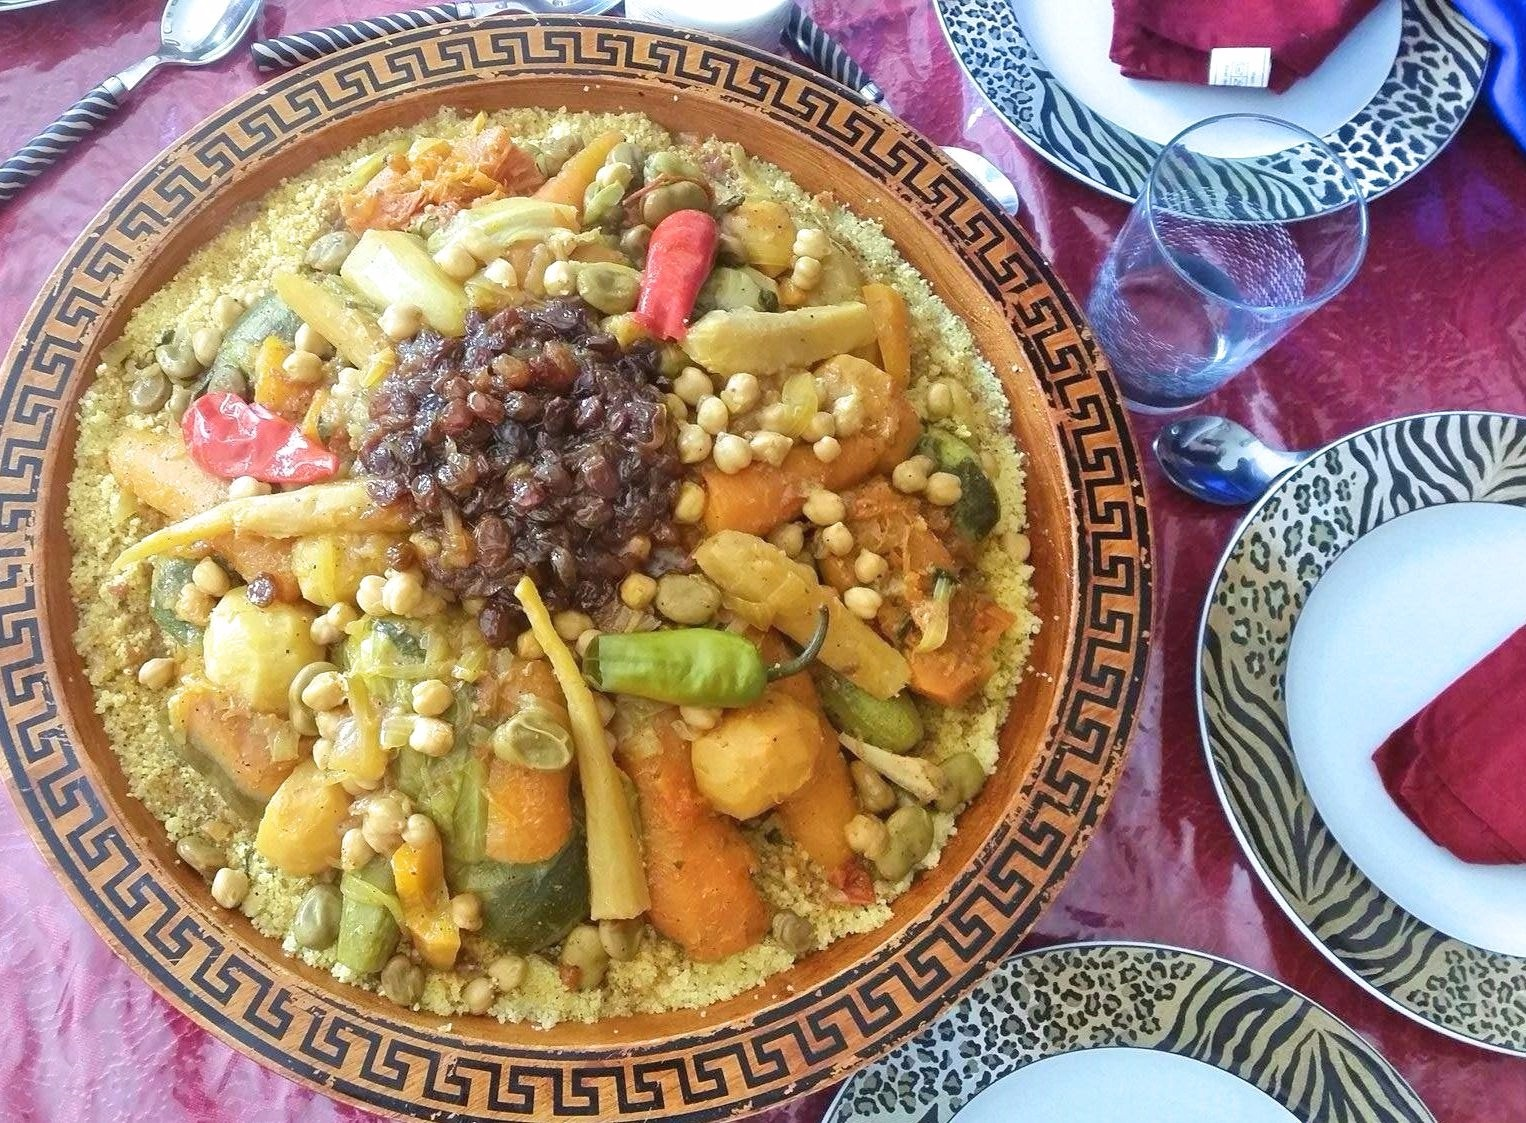 Moroccan Couscous With Seven Vegetables Couscous Bidaoui Taste Of Maroc